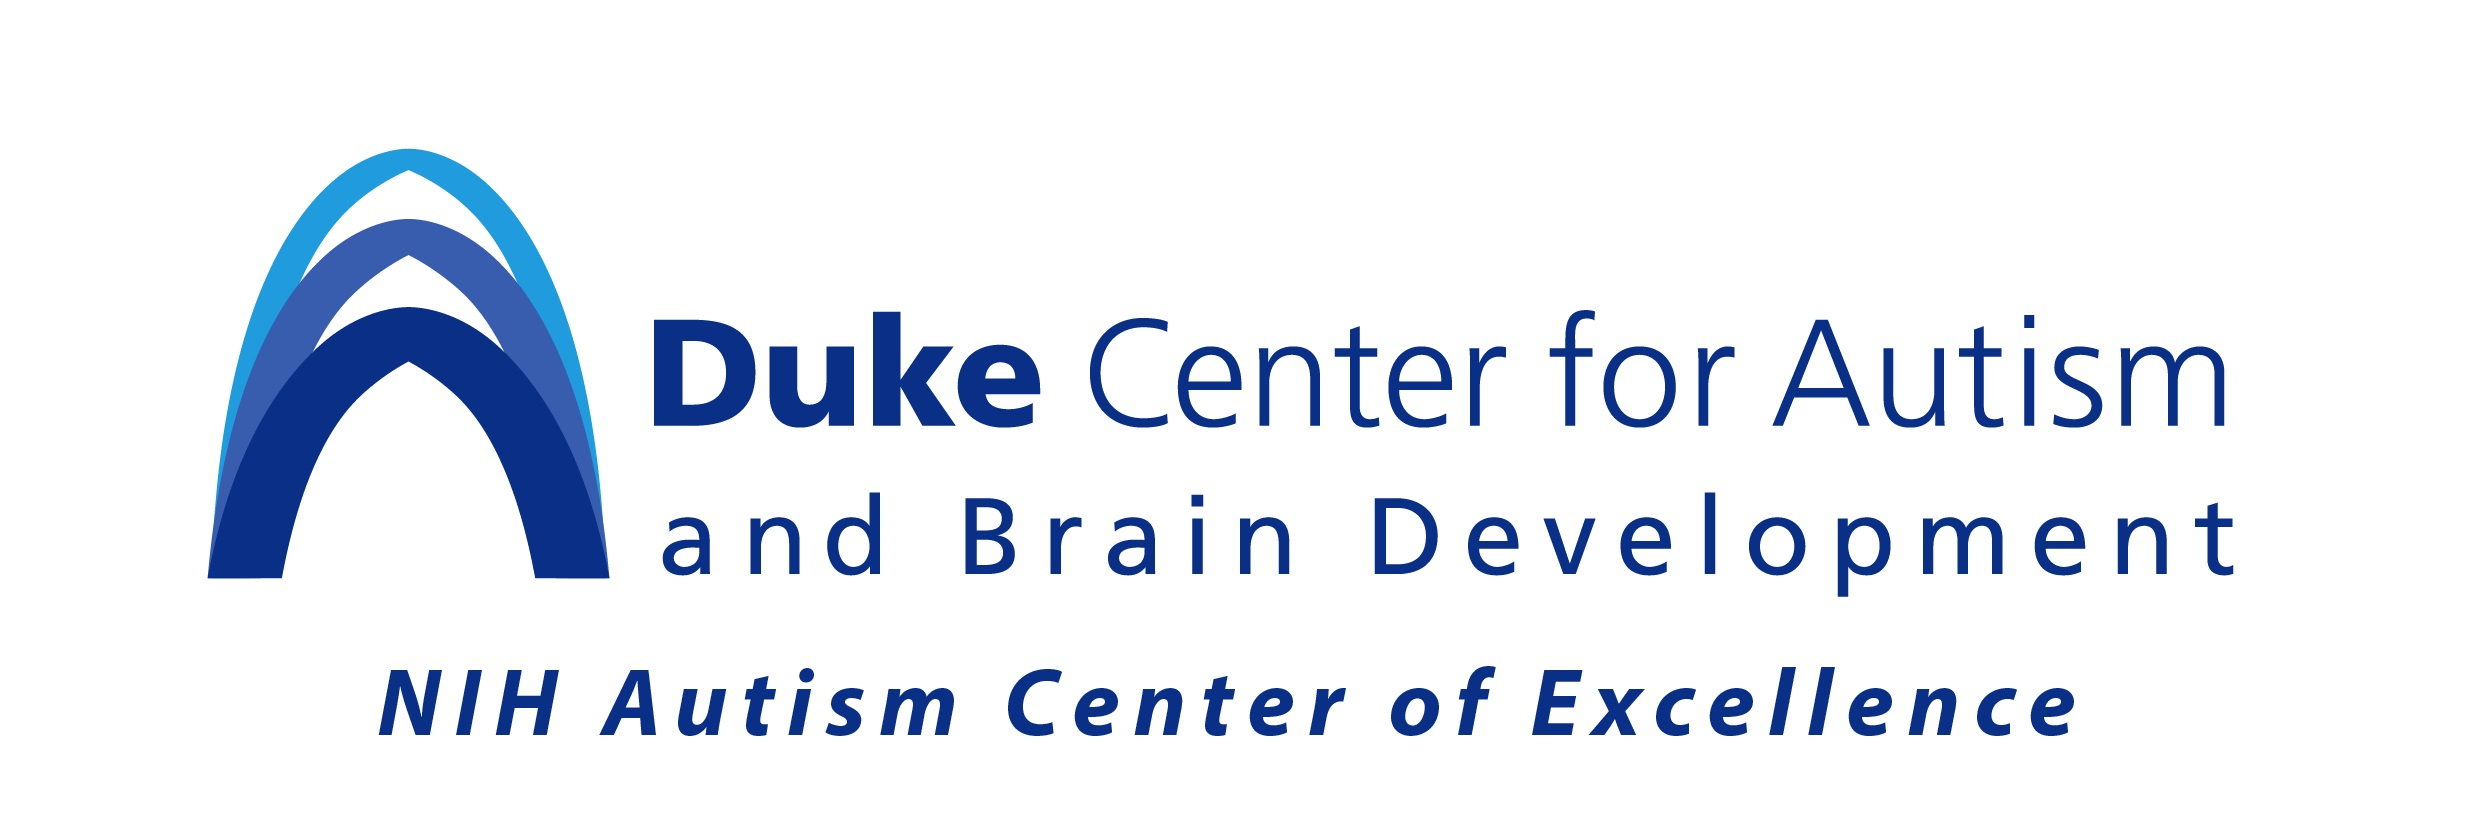 Duke Center for Autism, Converge Autism Summit, Greenville, SC